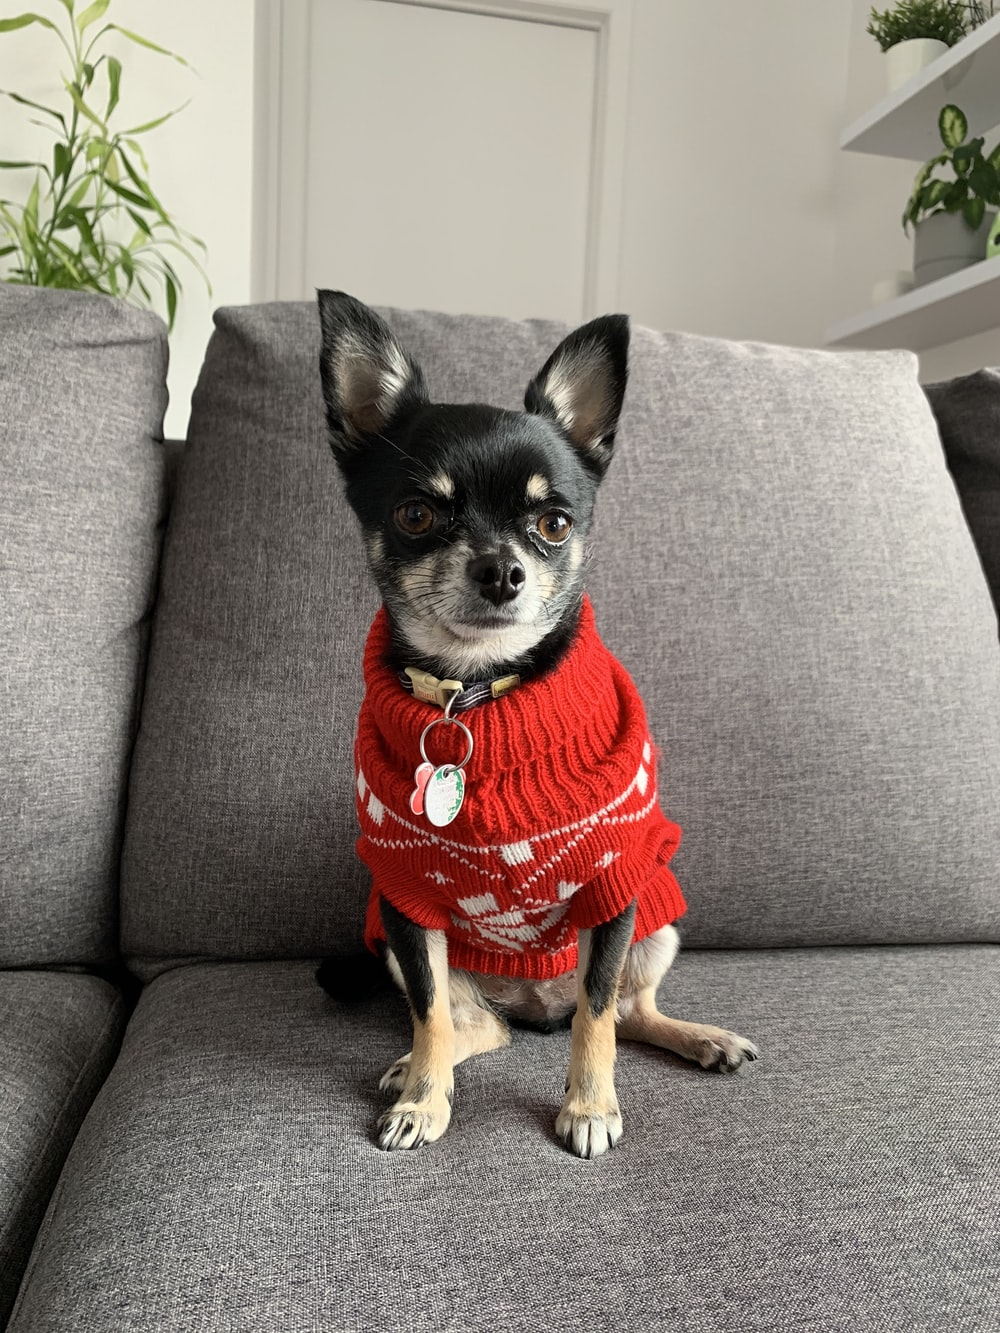 black and brown chihuahua wearing red shirt sitting on gray sofa